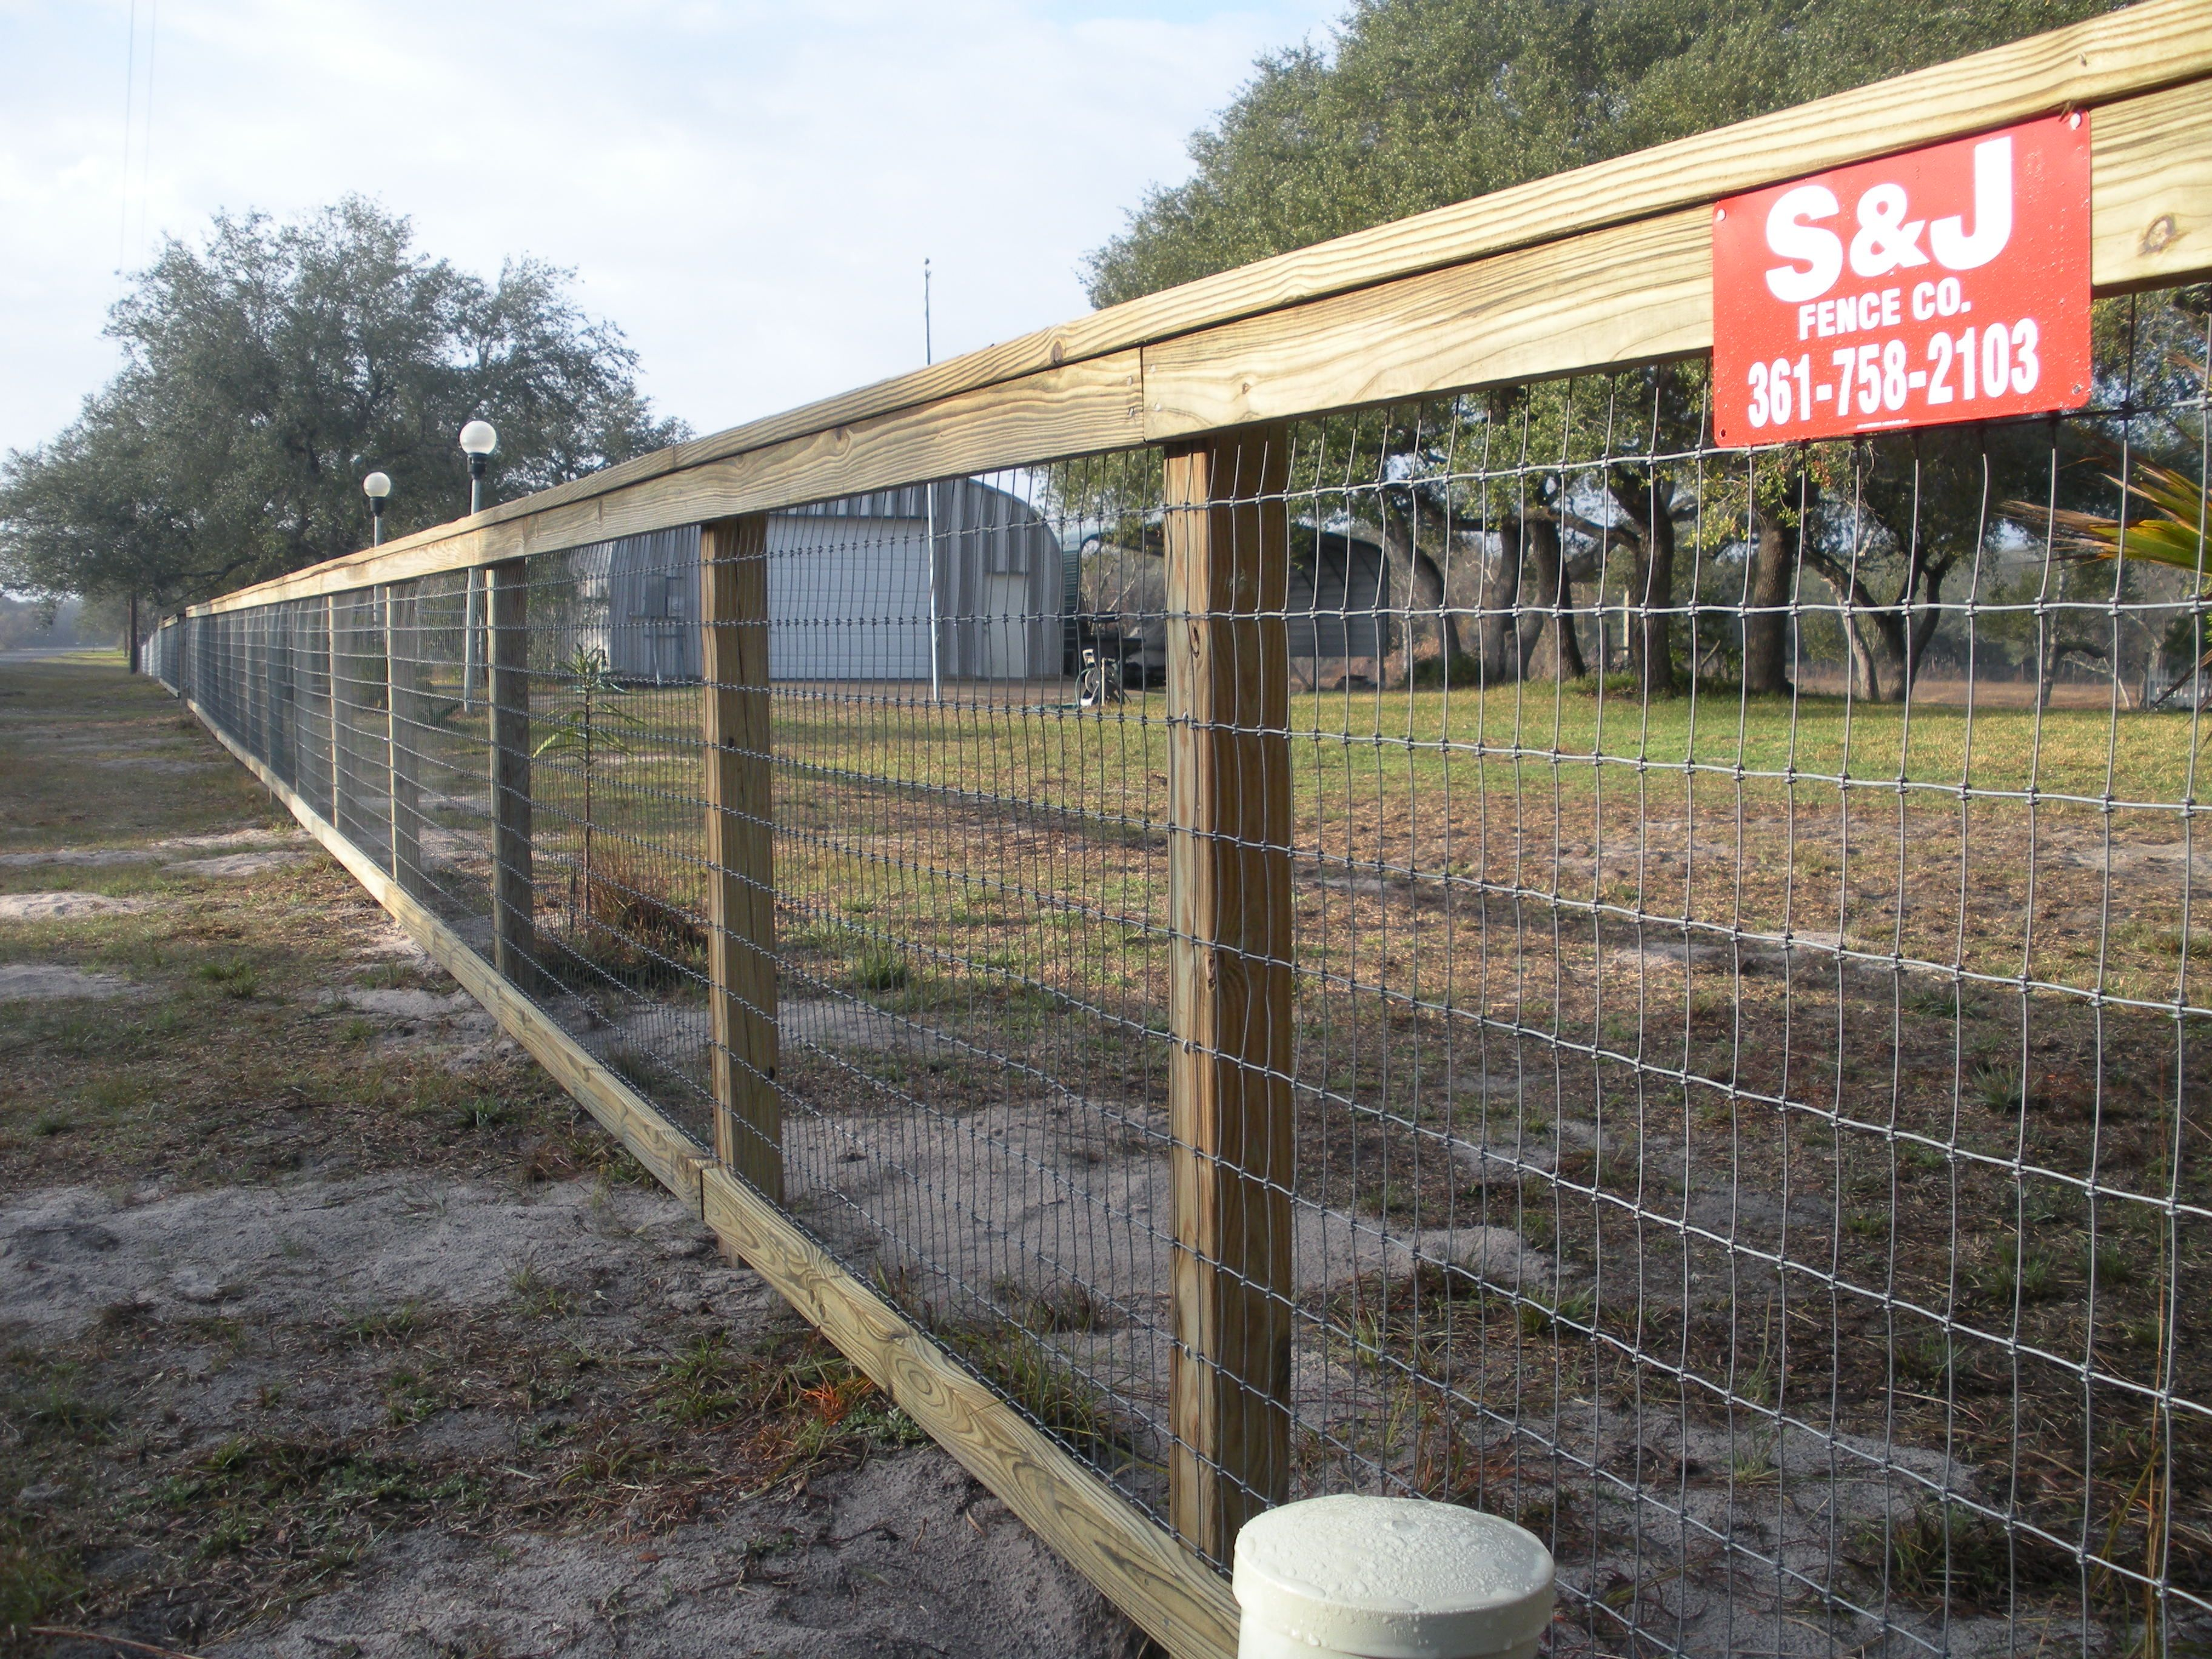 wire rail fence - Google Search | Fencing | Pinterest | Rail fence ...